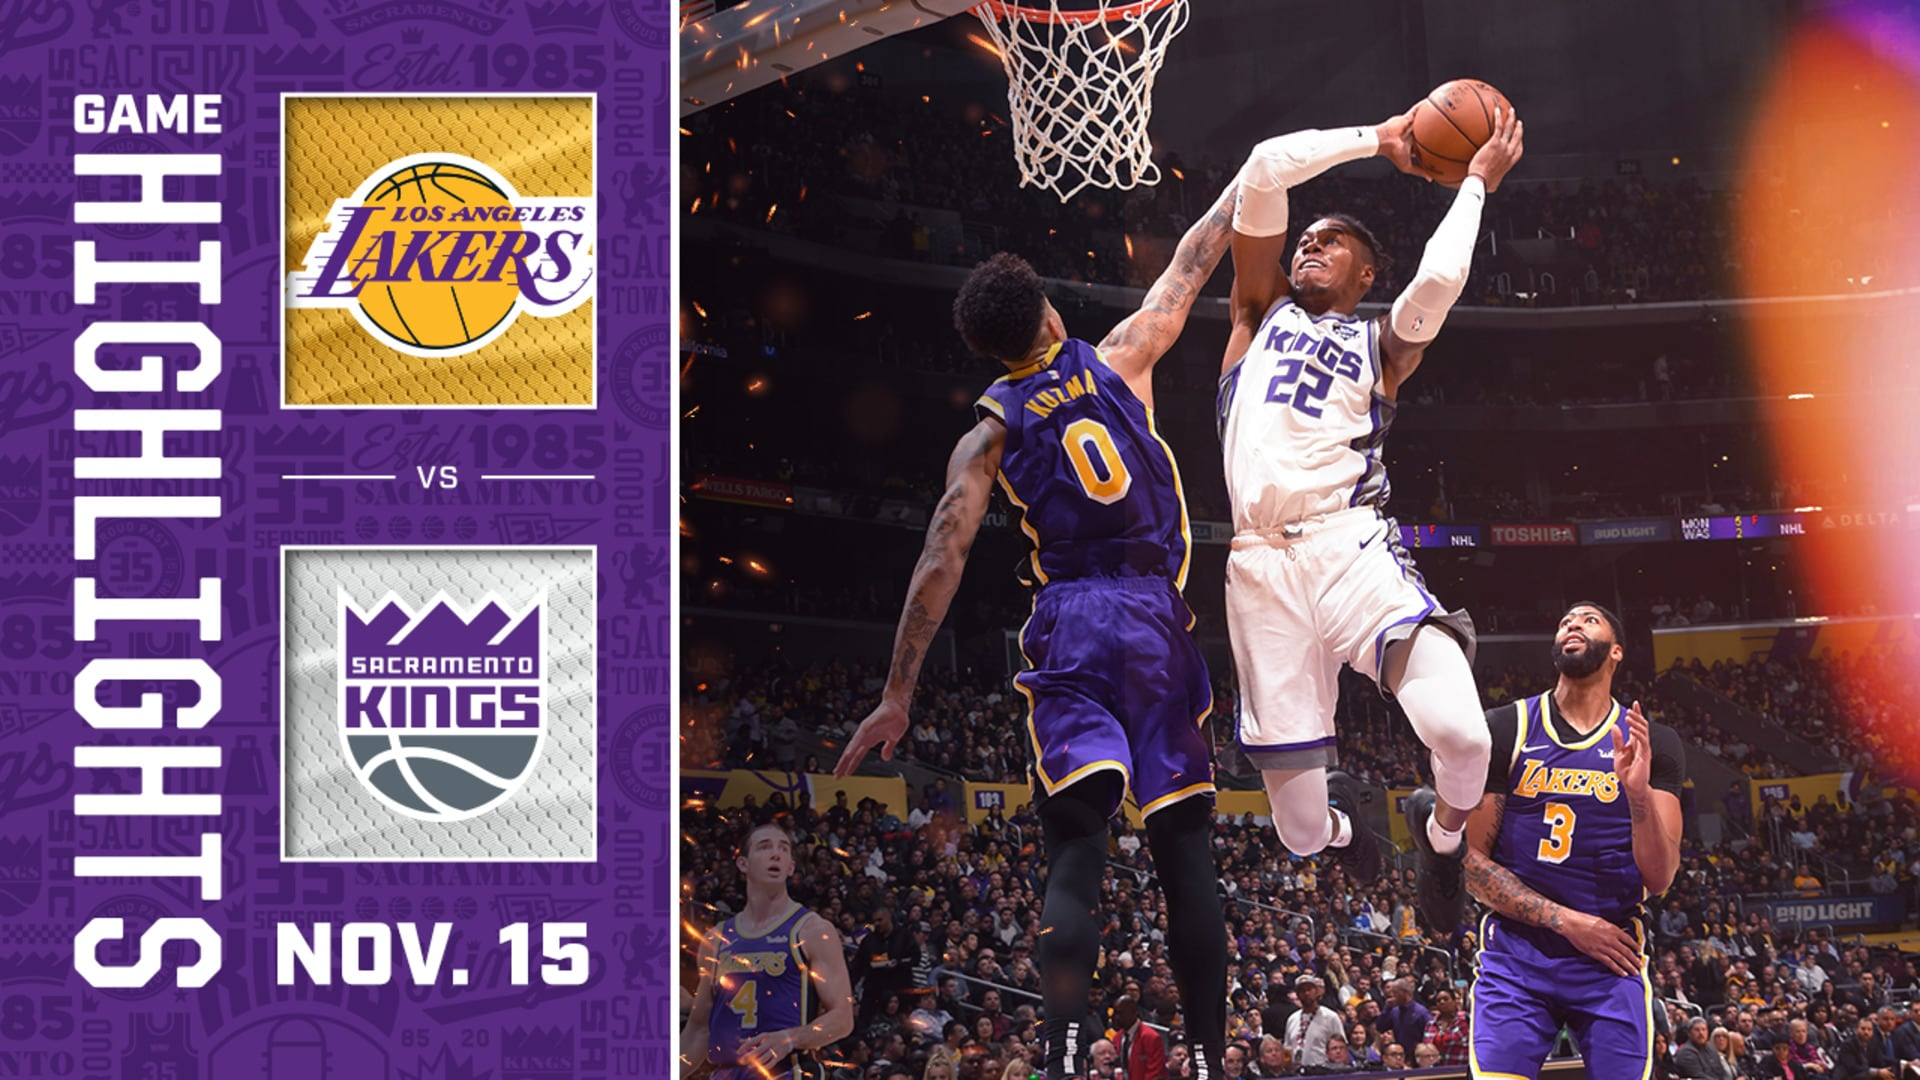 Kings & Lakers Goes Down to the Wire! | Kings vs Lakers Highlights